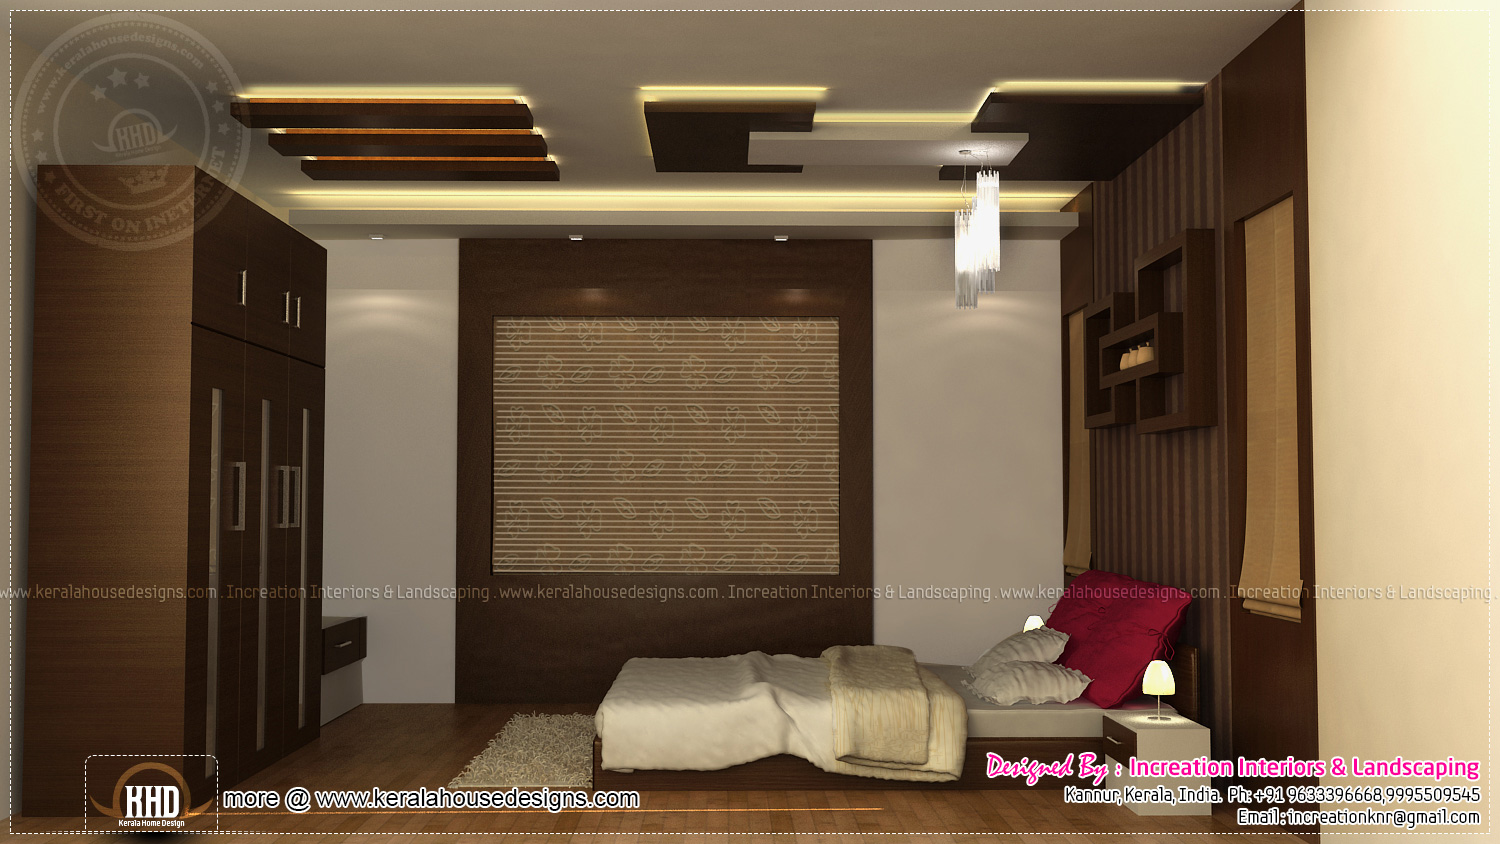 Interior designs by increation kannur kerala home for Latest room interior